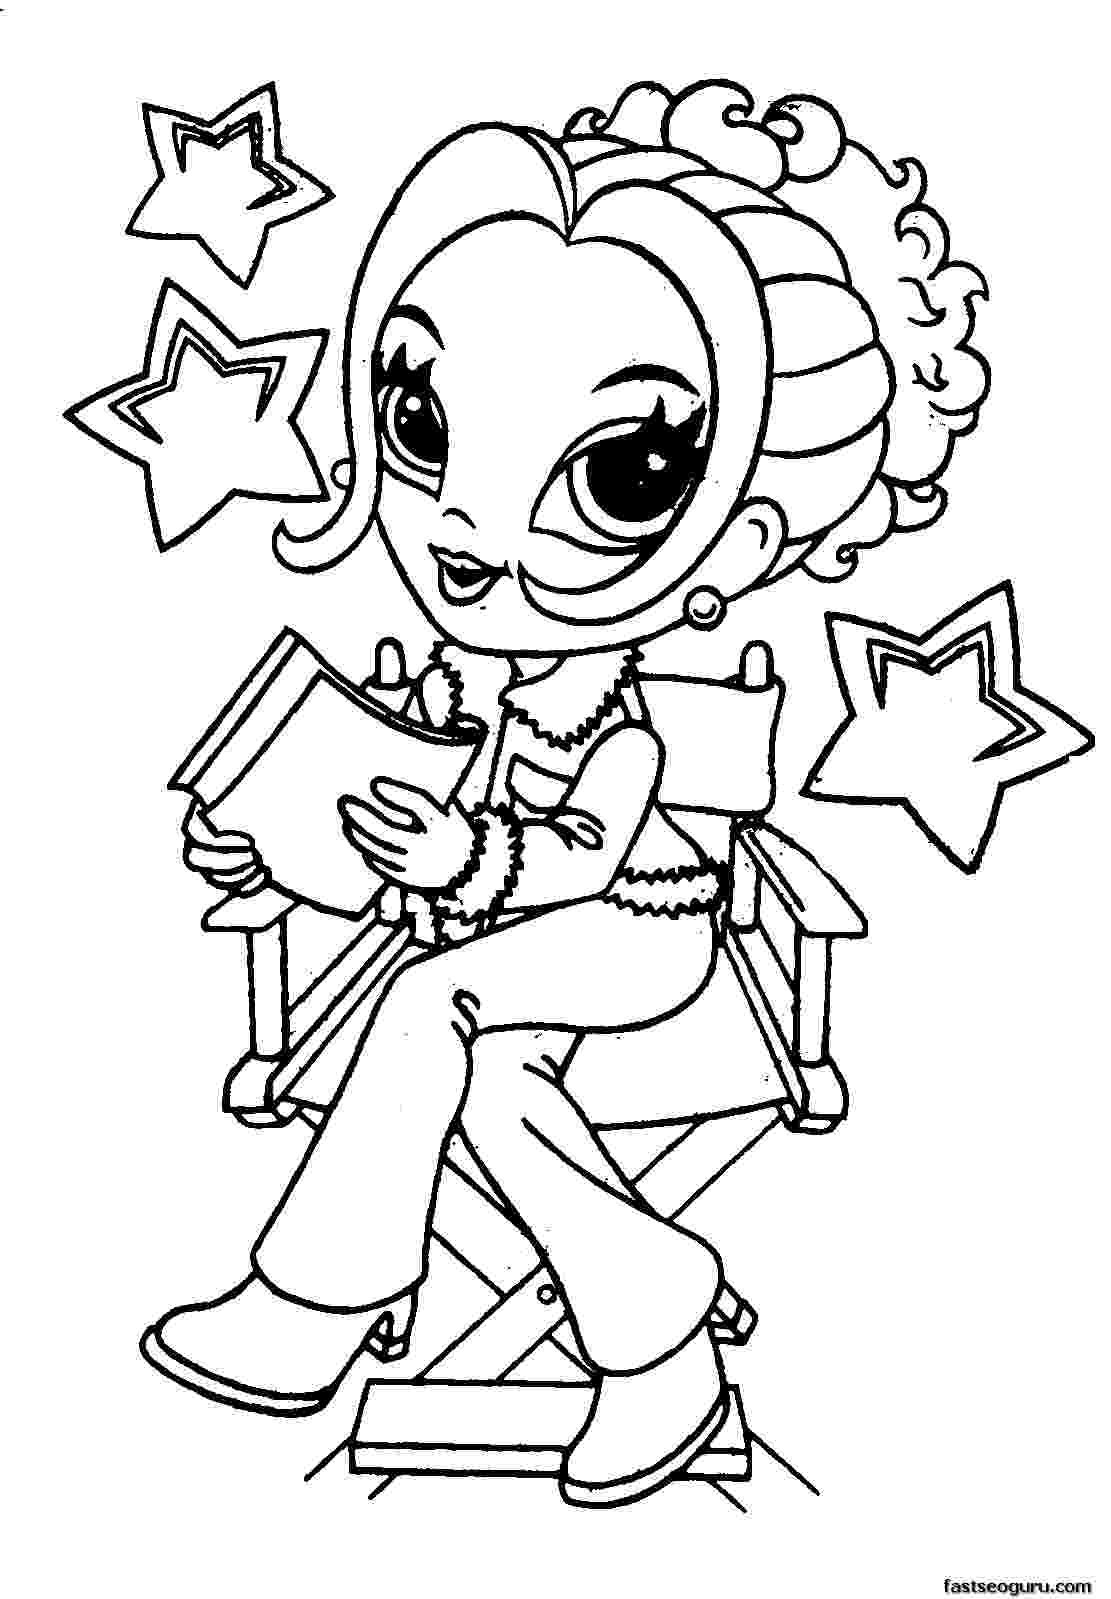 girl coloring sheets cute girl coloring pages to download and print for free sheets coloring girl